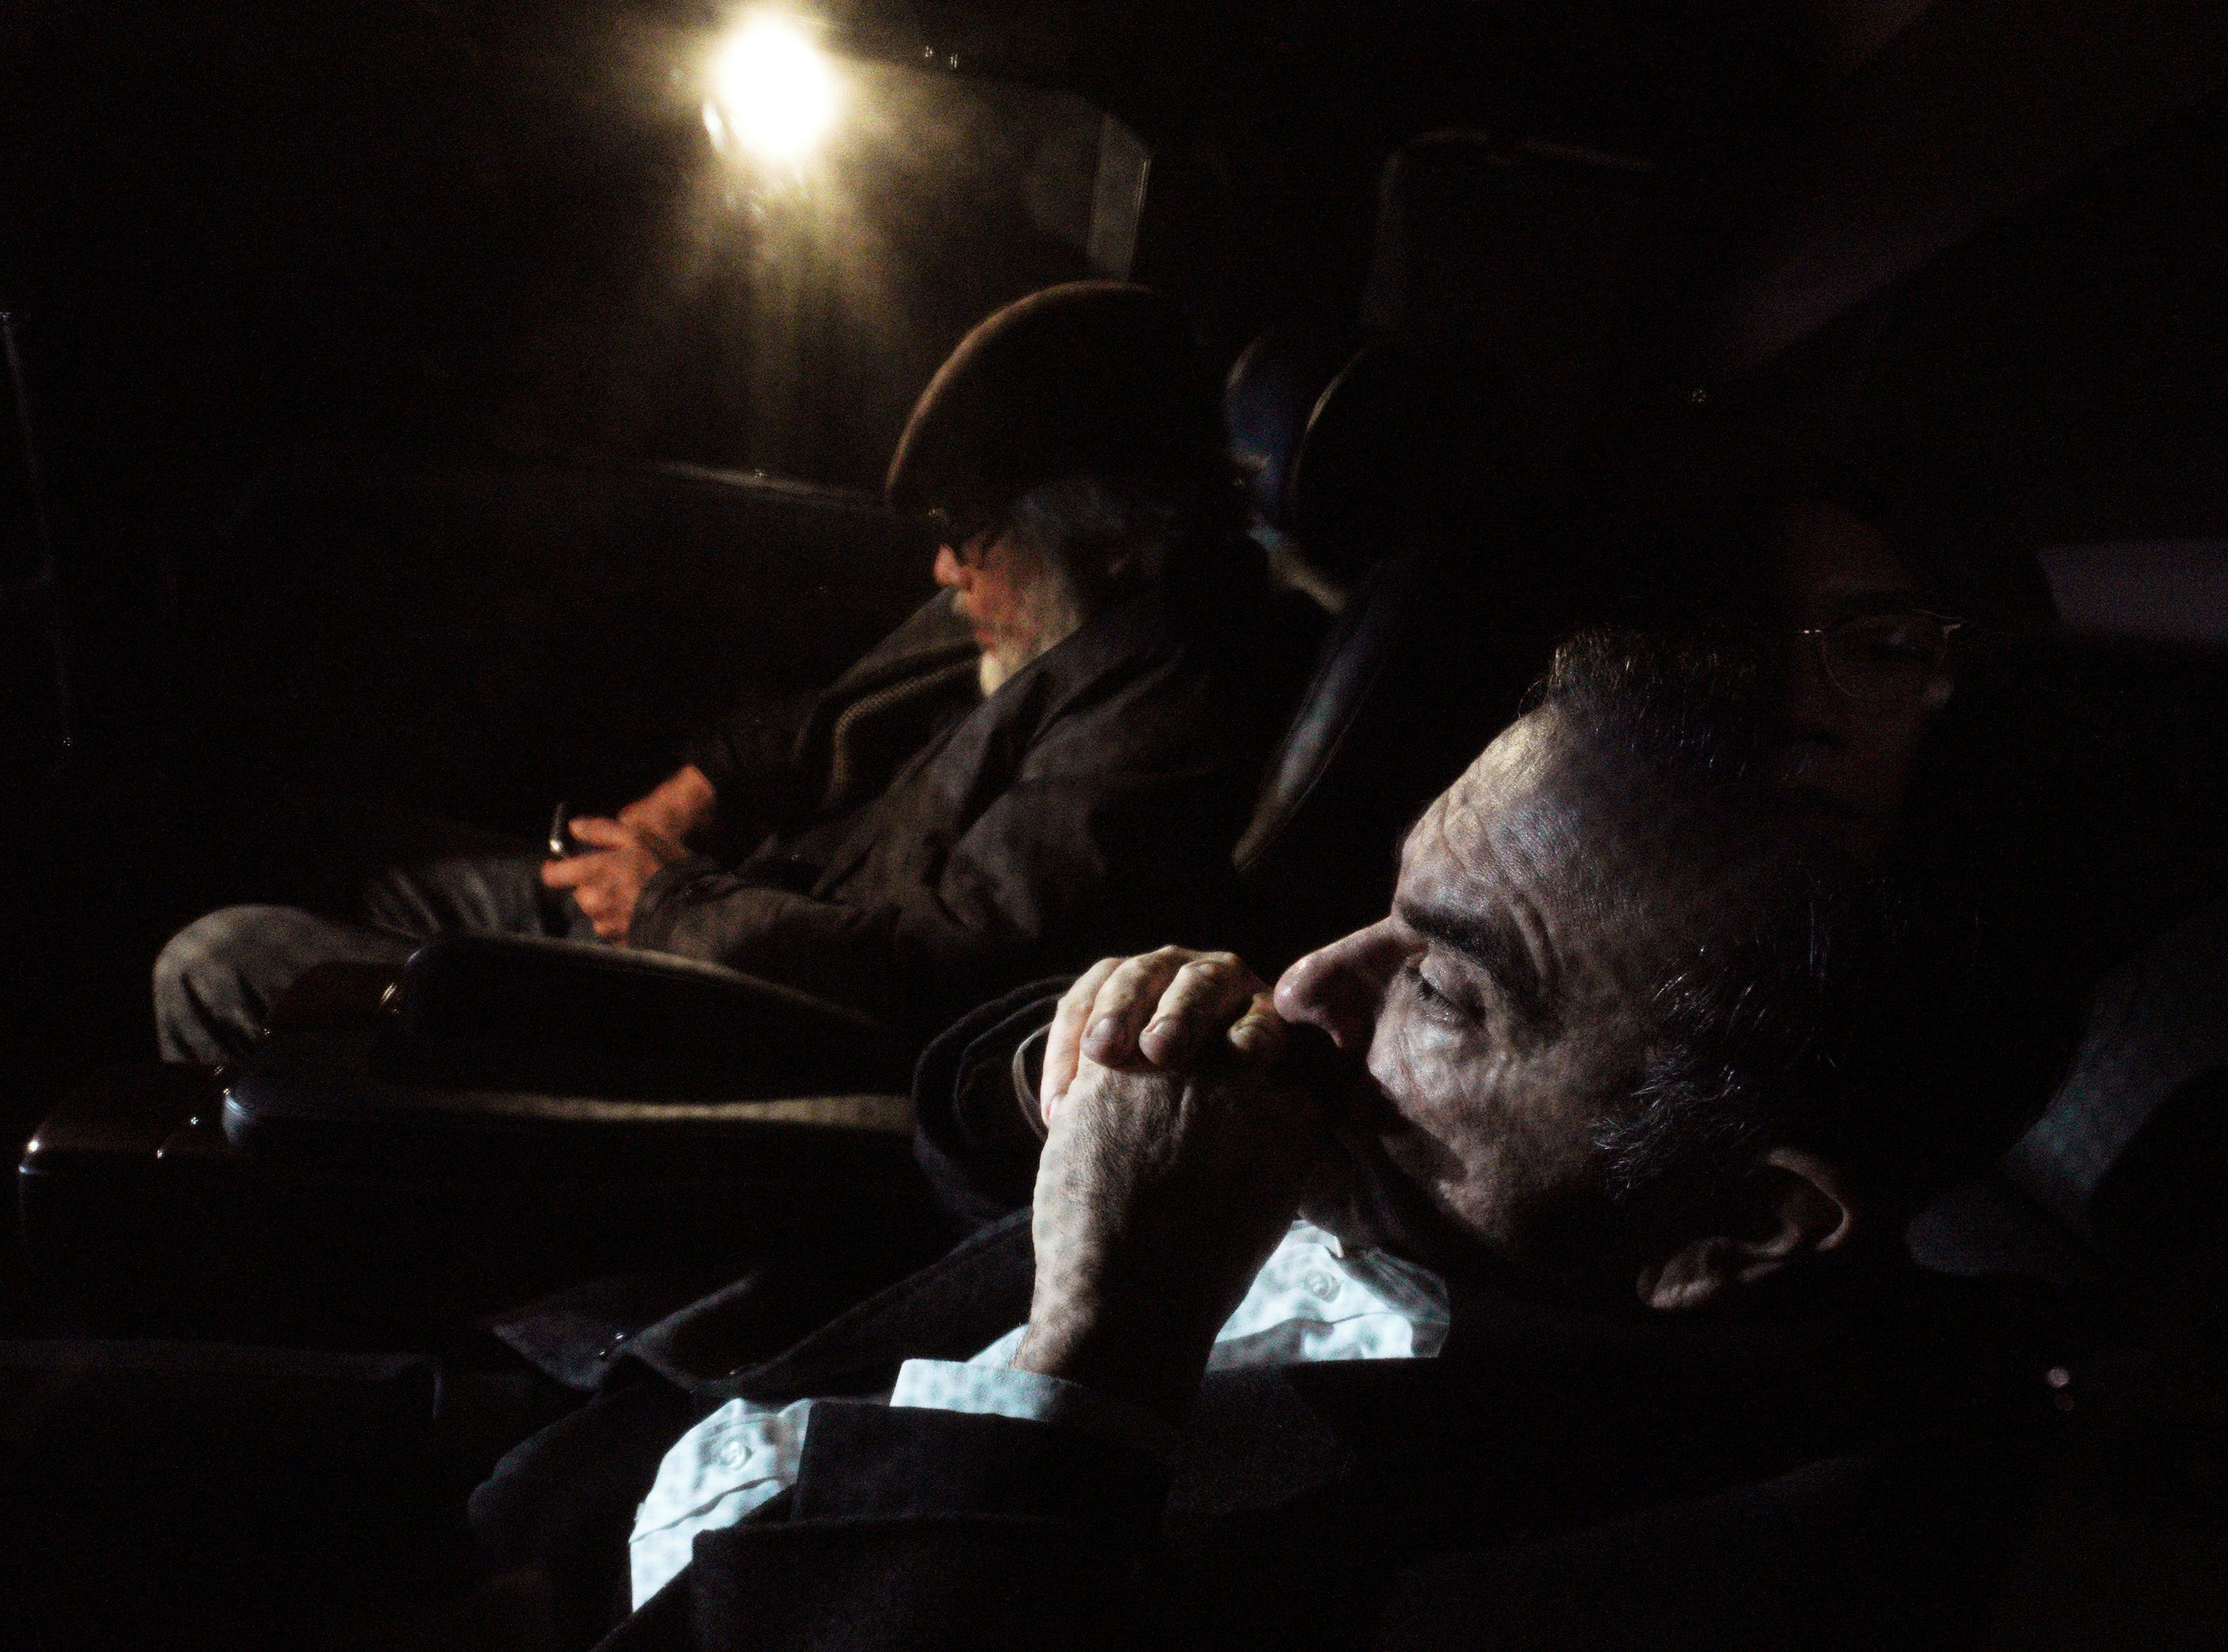 In this March 6, 2019, photo, former Nissan chairman Carlos Ghosn, right, sits with his lawyer Takashi Takano, left, in a car Wednesday, March 6, 2019, in Tokyo, following Ghosn's release. The mystery of Ghosn's strange attire when he was released from Japanese detention has been solved, with his lawyer Takano saying Friday, March 8, that it was an effort to protect the former chairman of Nissan from intense media attention. (AP Photo/Eugene Hoshiko)